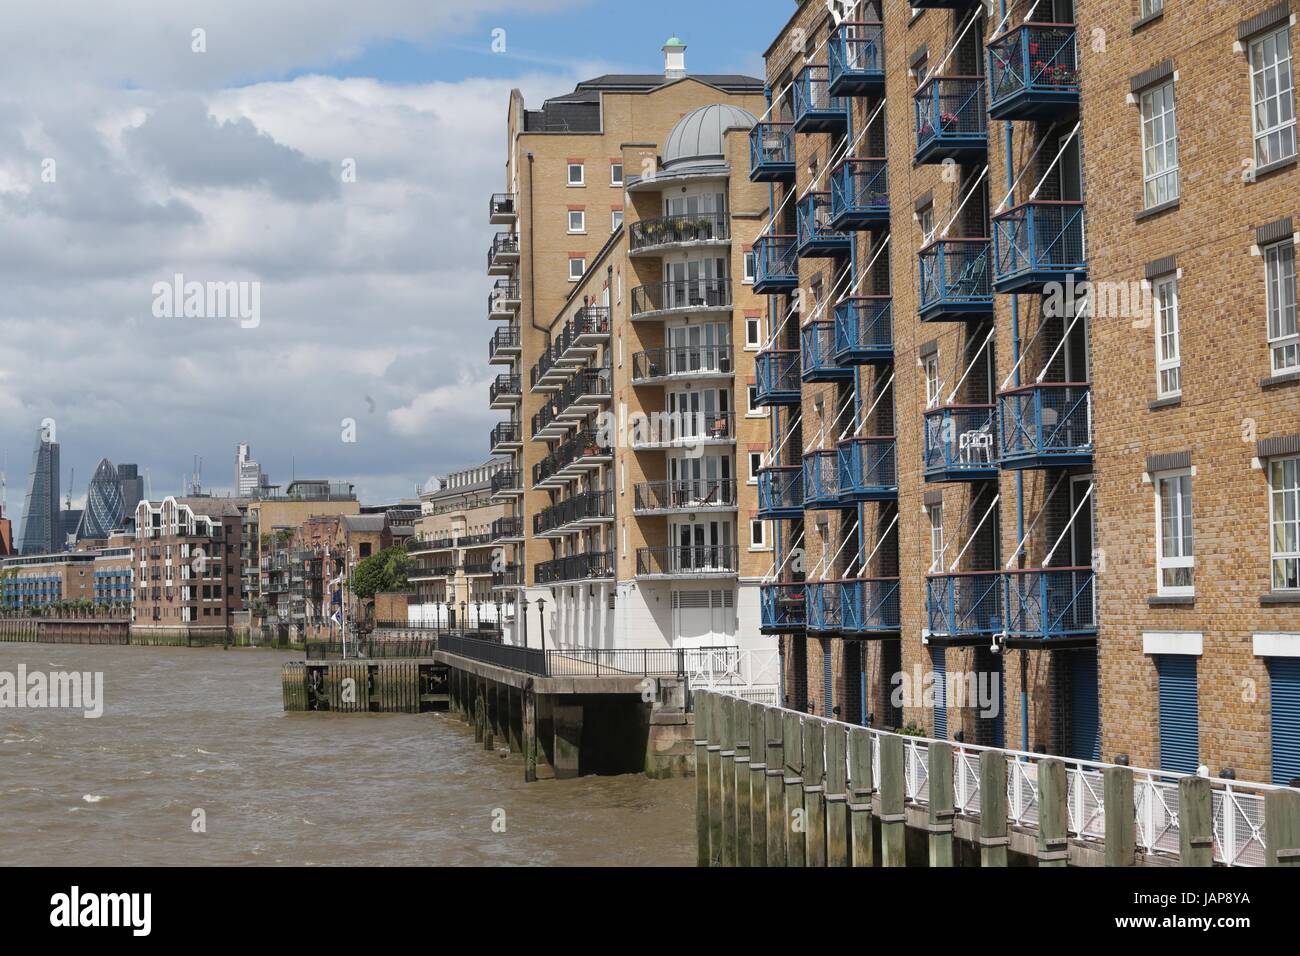 River Thames at Limehouse - Stock Image